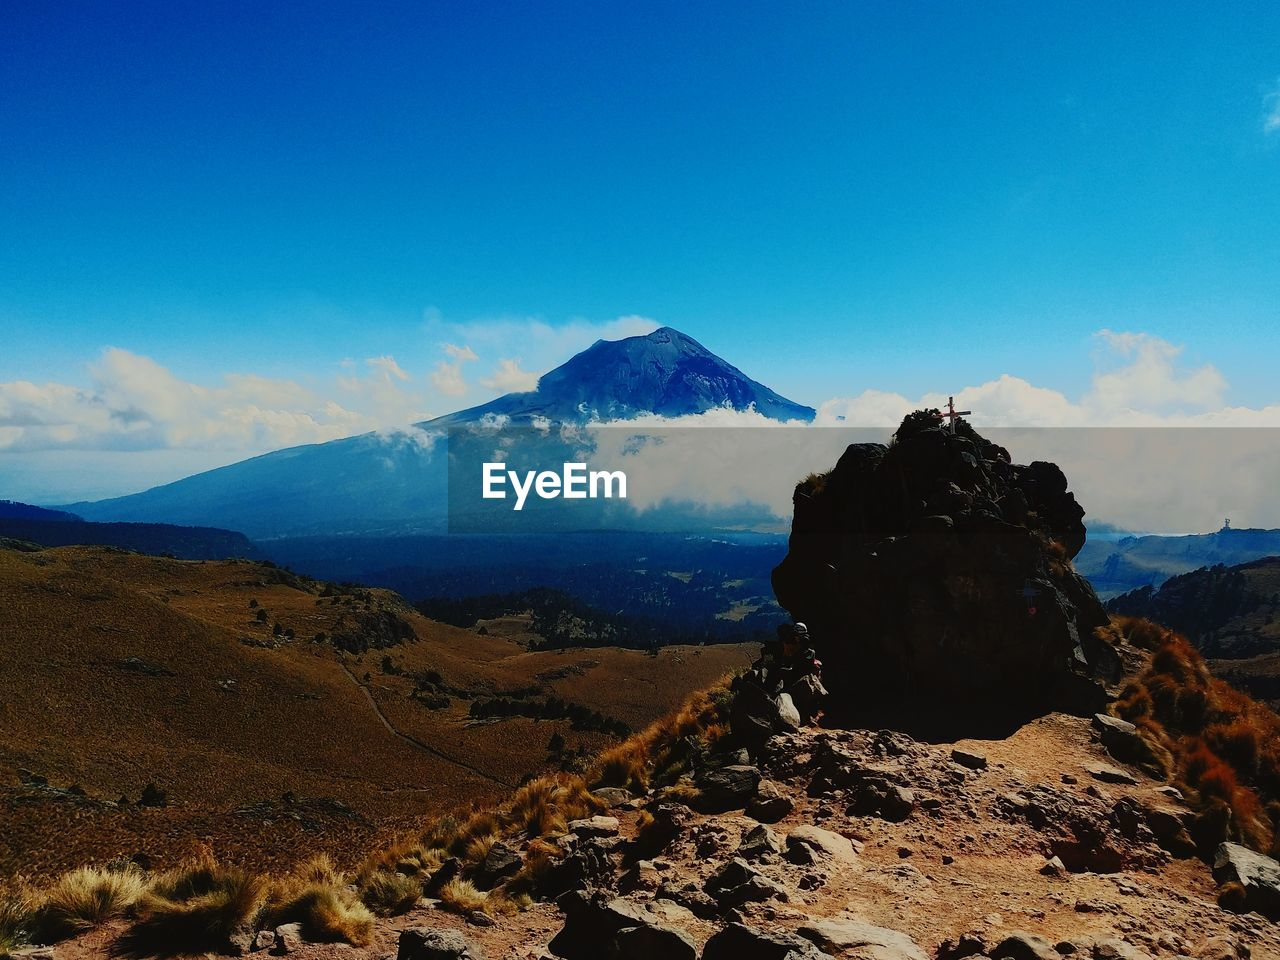 mountain, sky, scenics - nature, beauty in nature, tranquil scene, tranquility, rock, non-urban scene, landscape, solid, nature, environment, idyllic, rock - object, volcano, cloud - sky, land, no people, blue, mountain peak, mountain range, outdoors, snowcapped mountain, volcanic crater